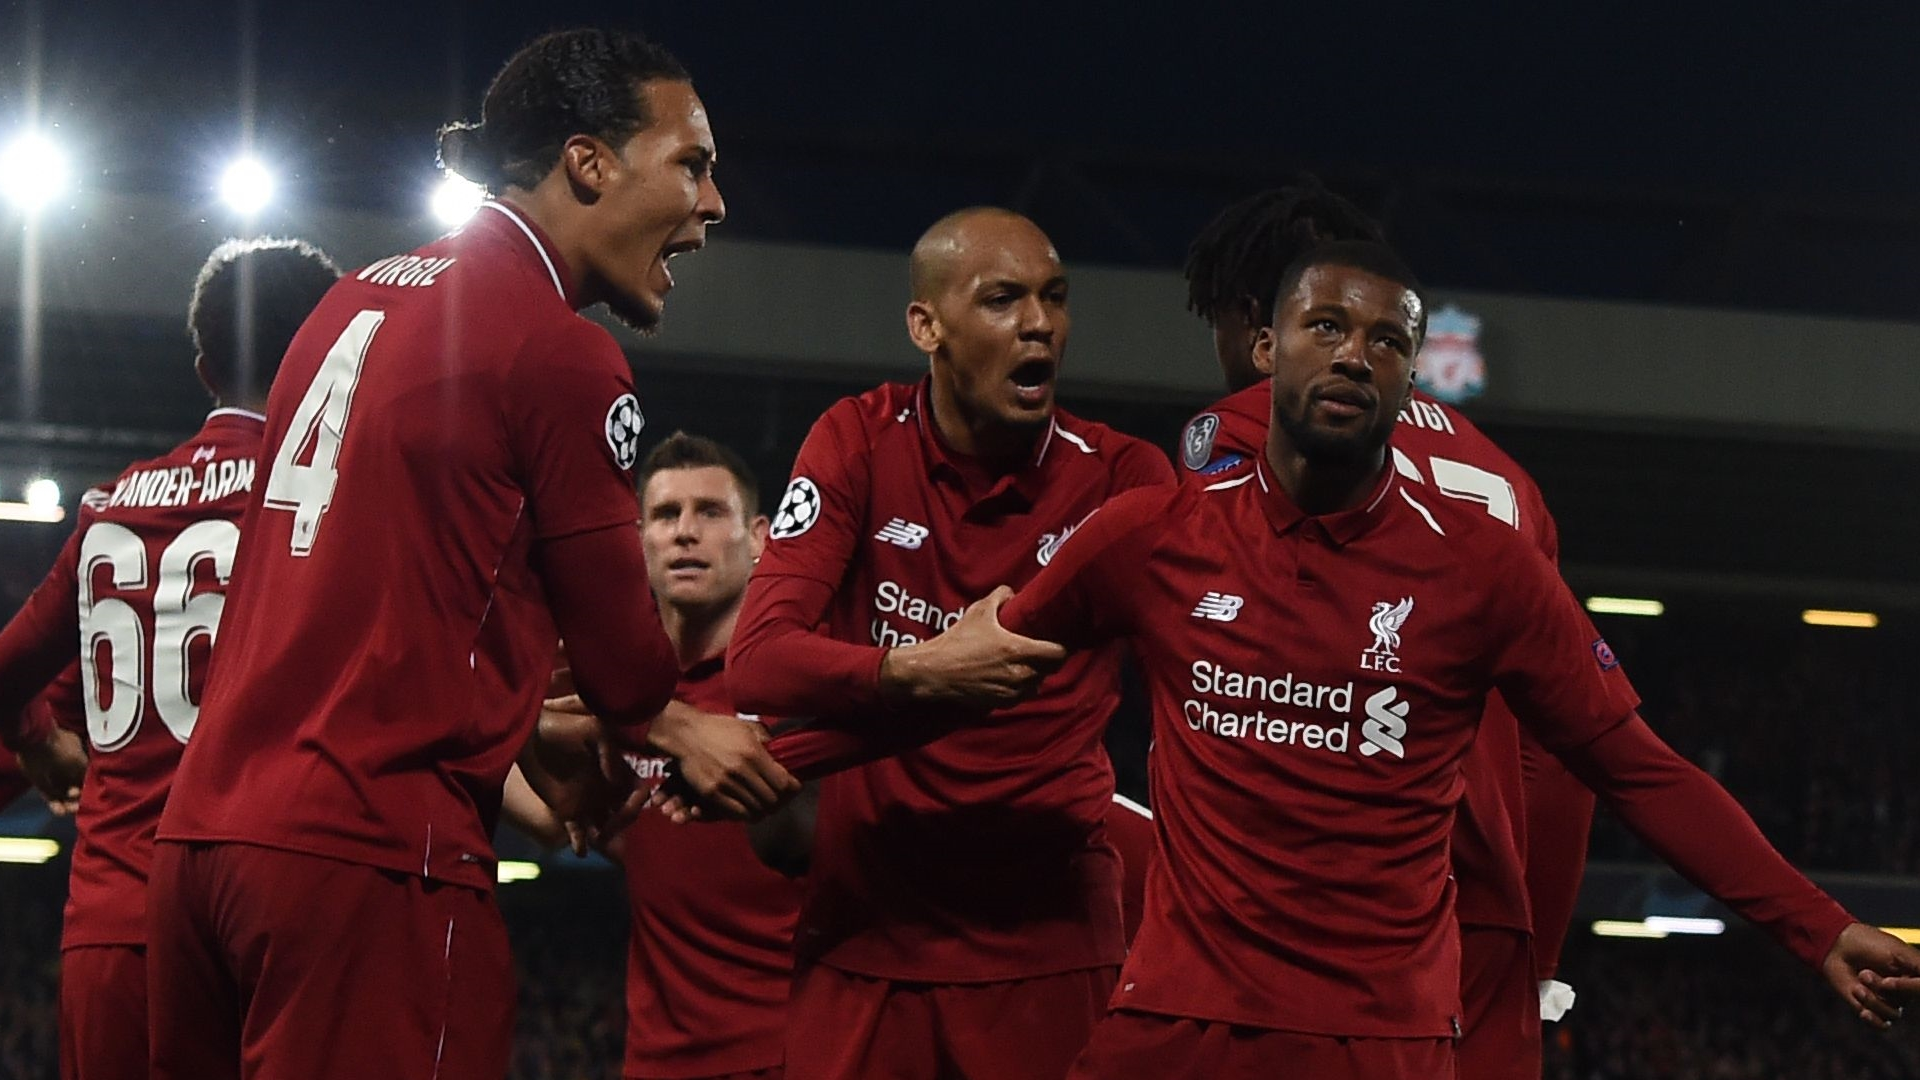 Liverpool celebrate vs Barcelona 2019